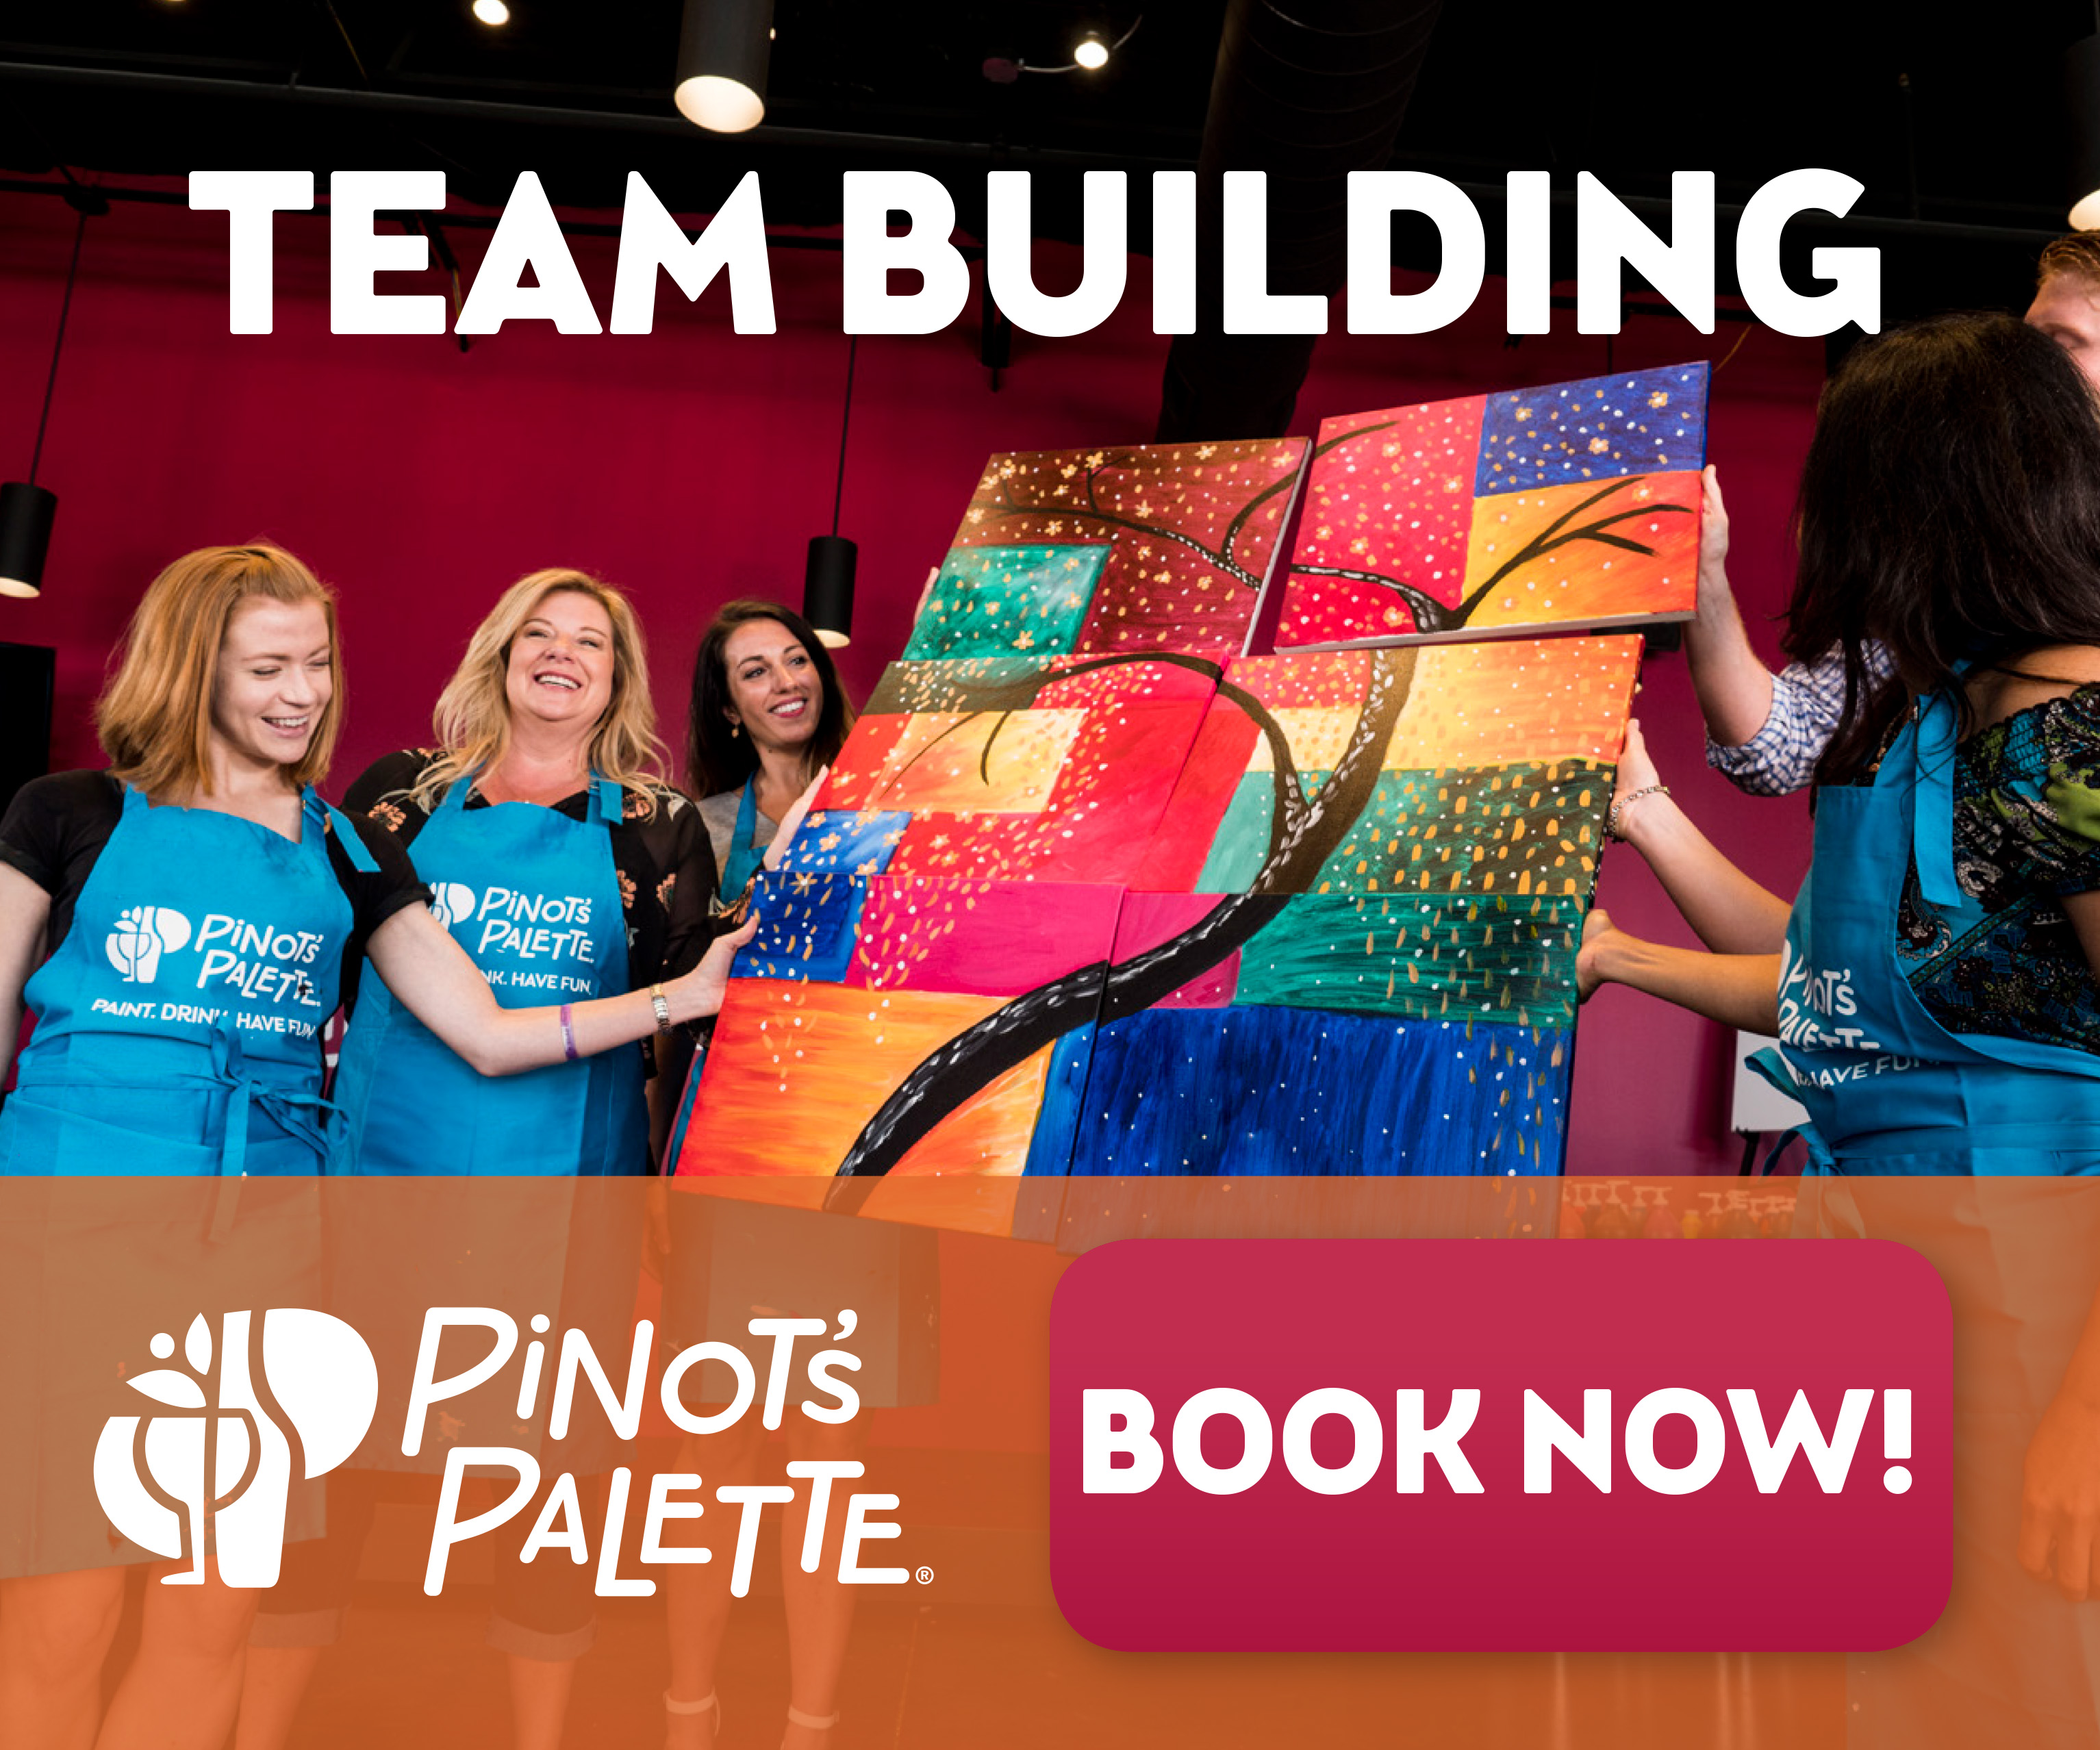 Team Building with Pinot's Palette